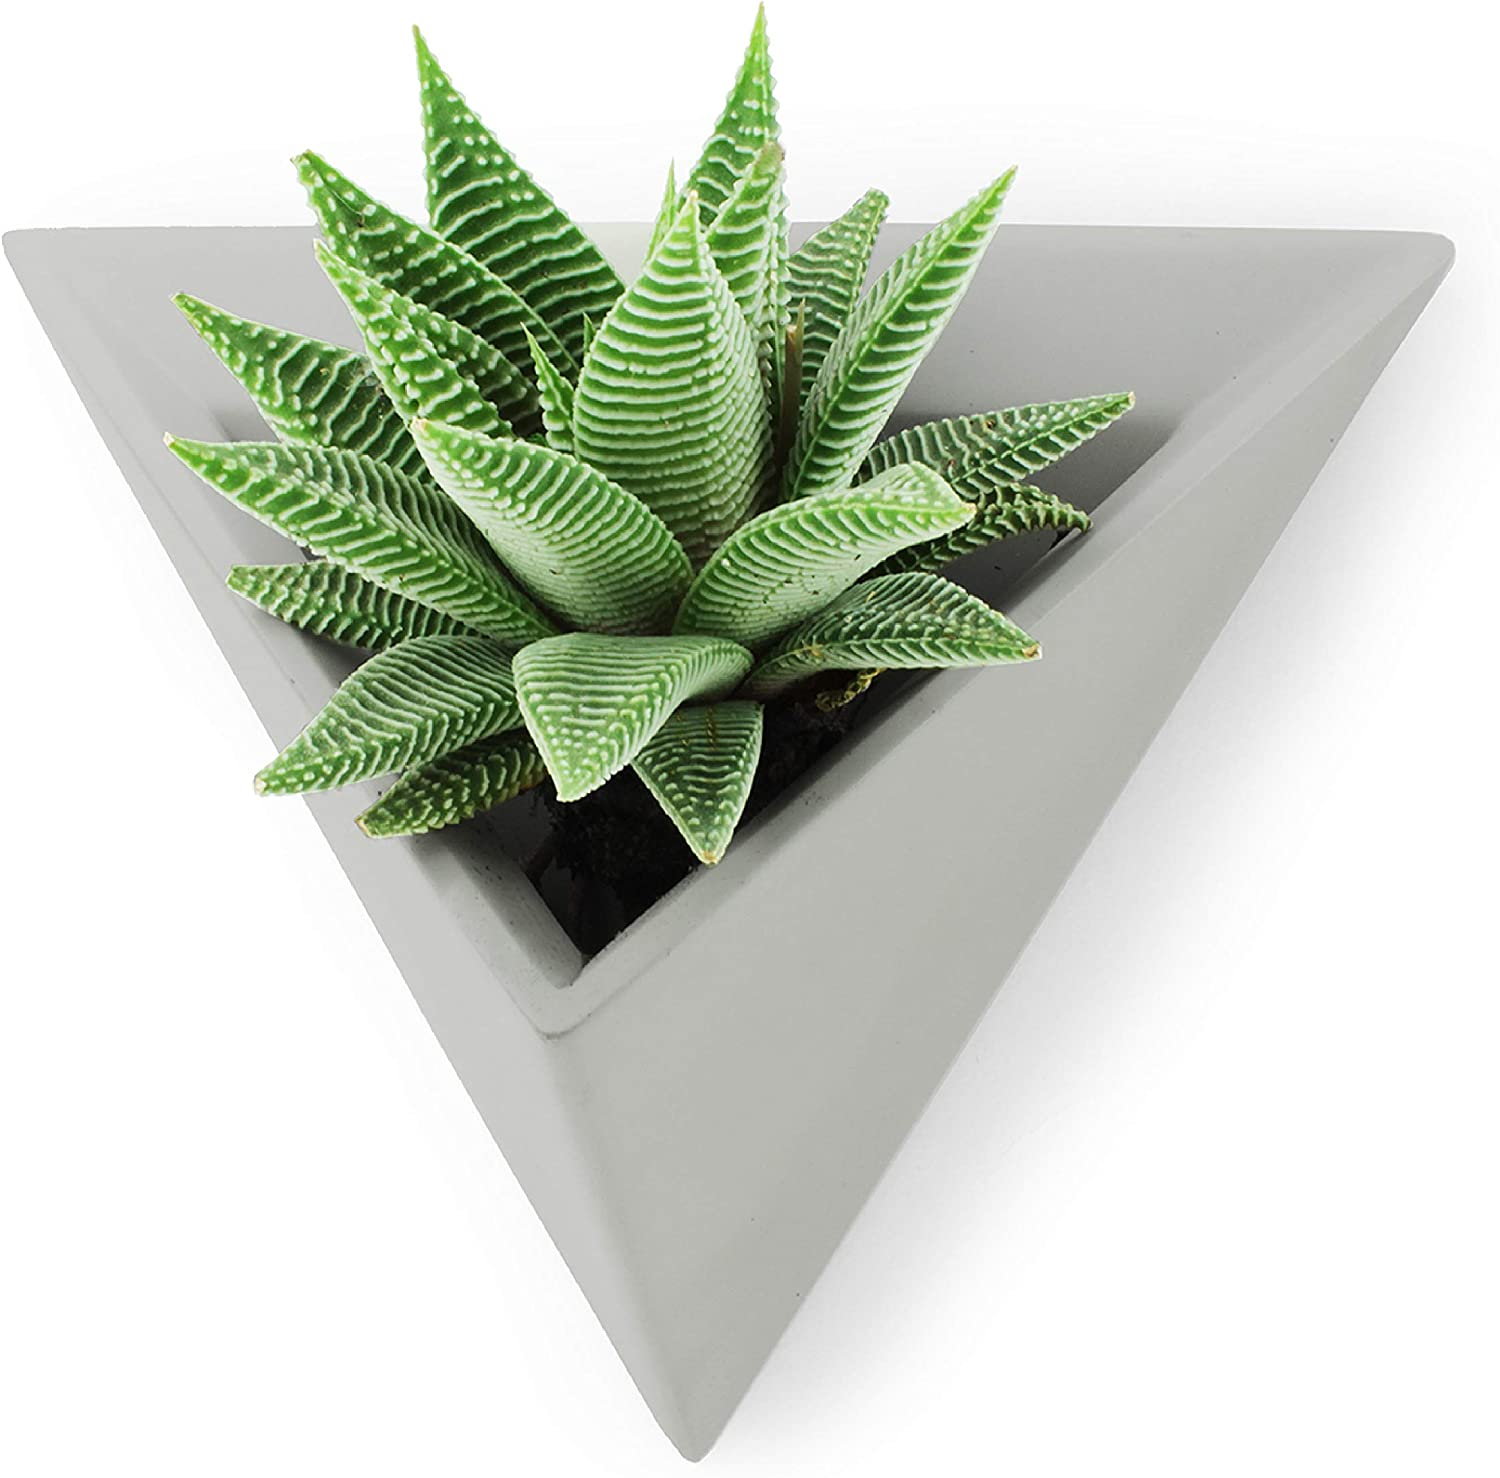 Slice of Goodness Triangular Wall Mounted Succulent Planter Pot - Small Smooth Cement Plant Pots for Succulents and Cactus Plants - Easy to Mount with Screws Included